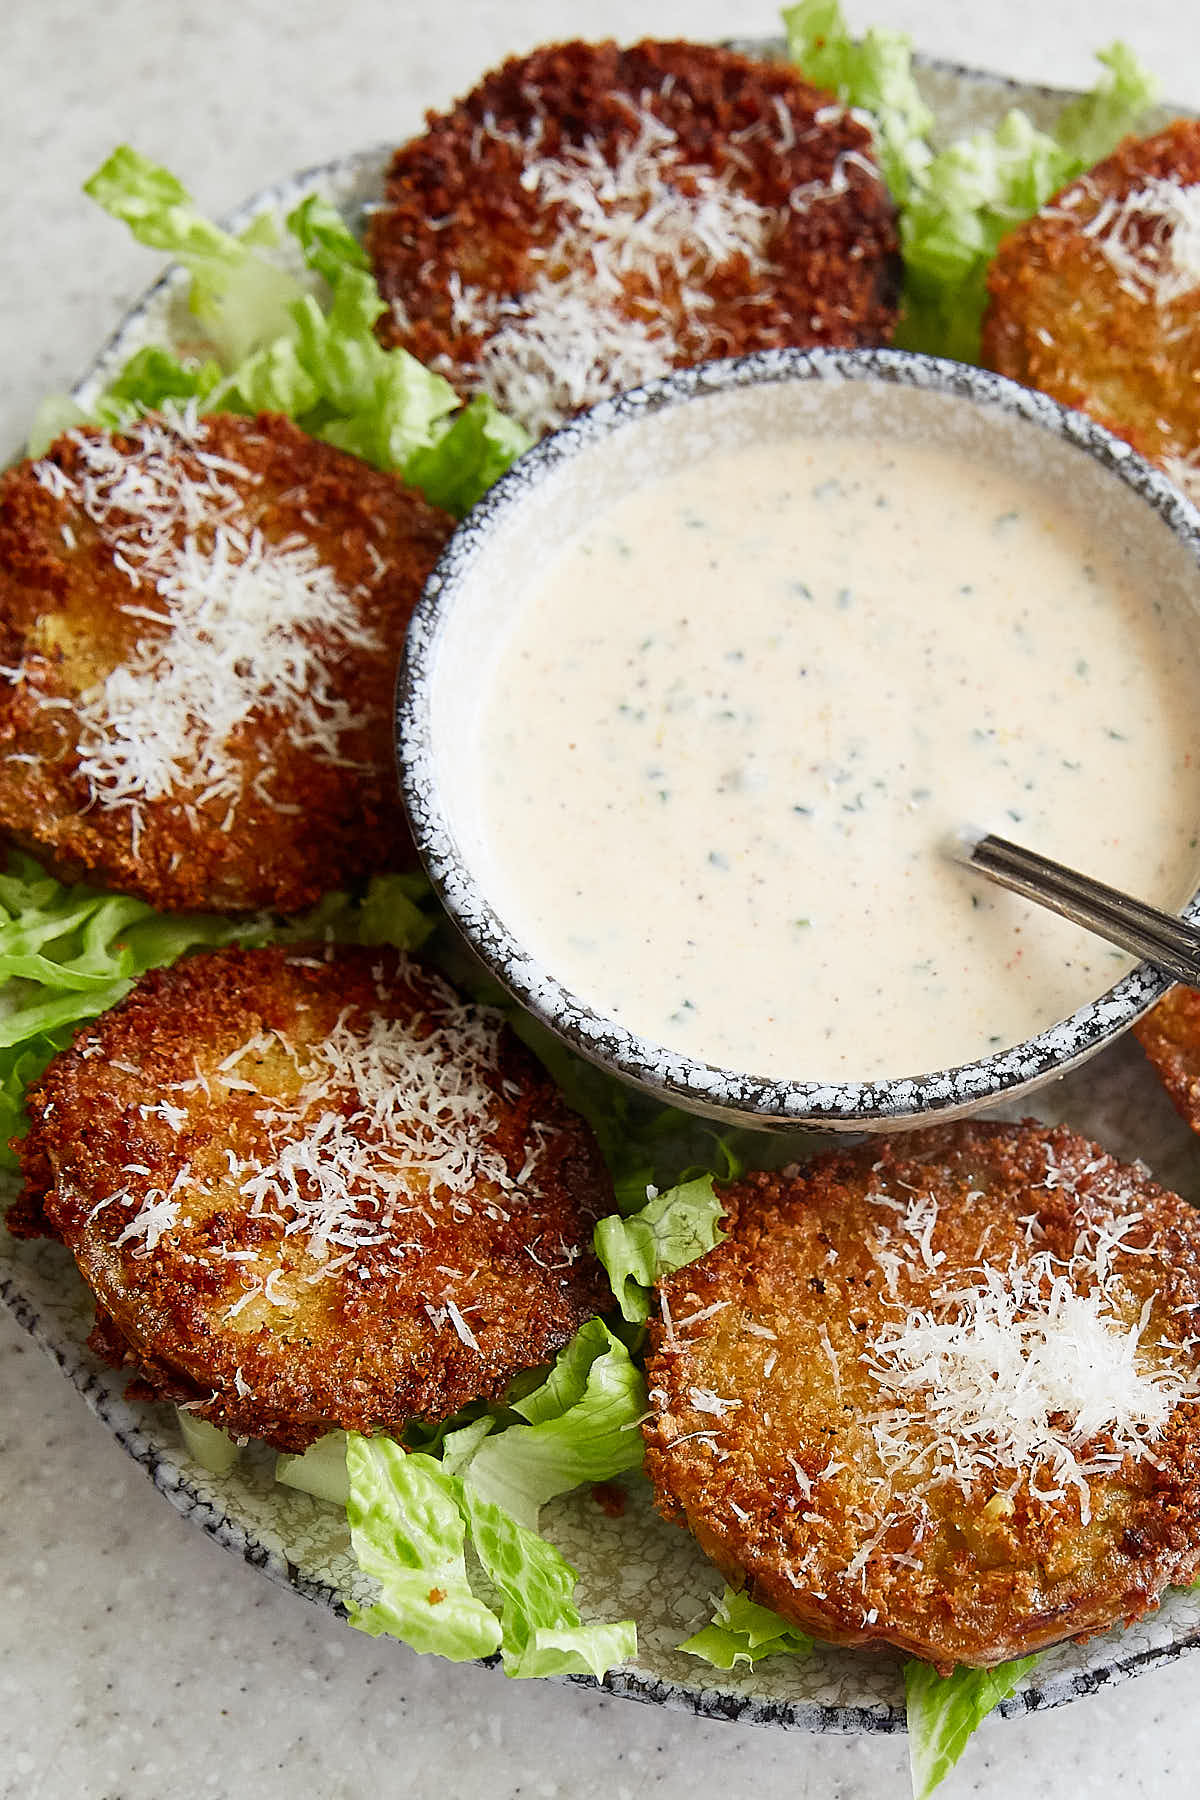 A bowl of ranch dressing next to fried green tomatoes.